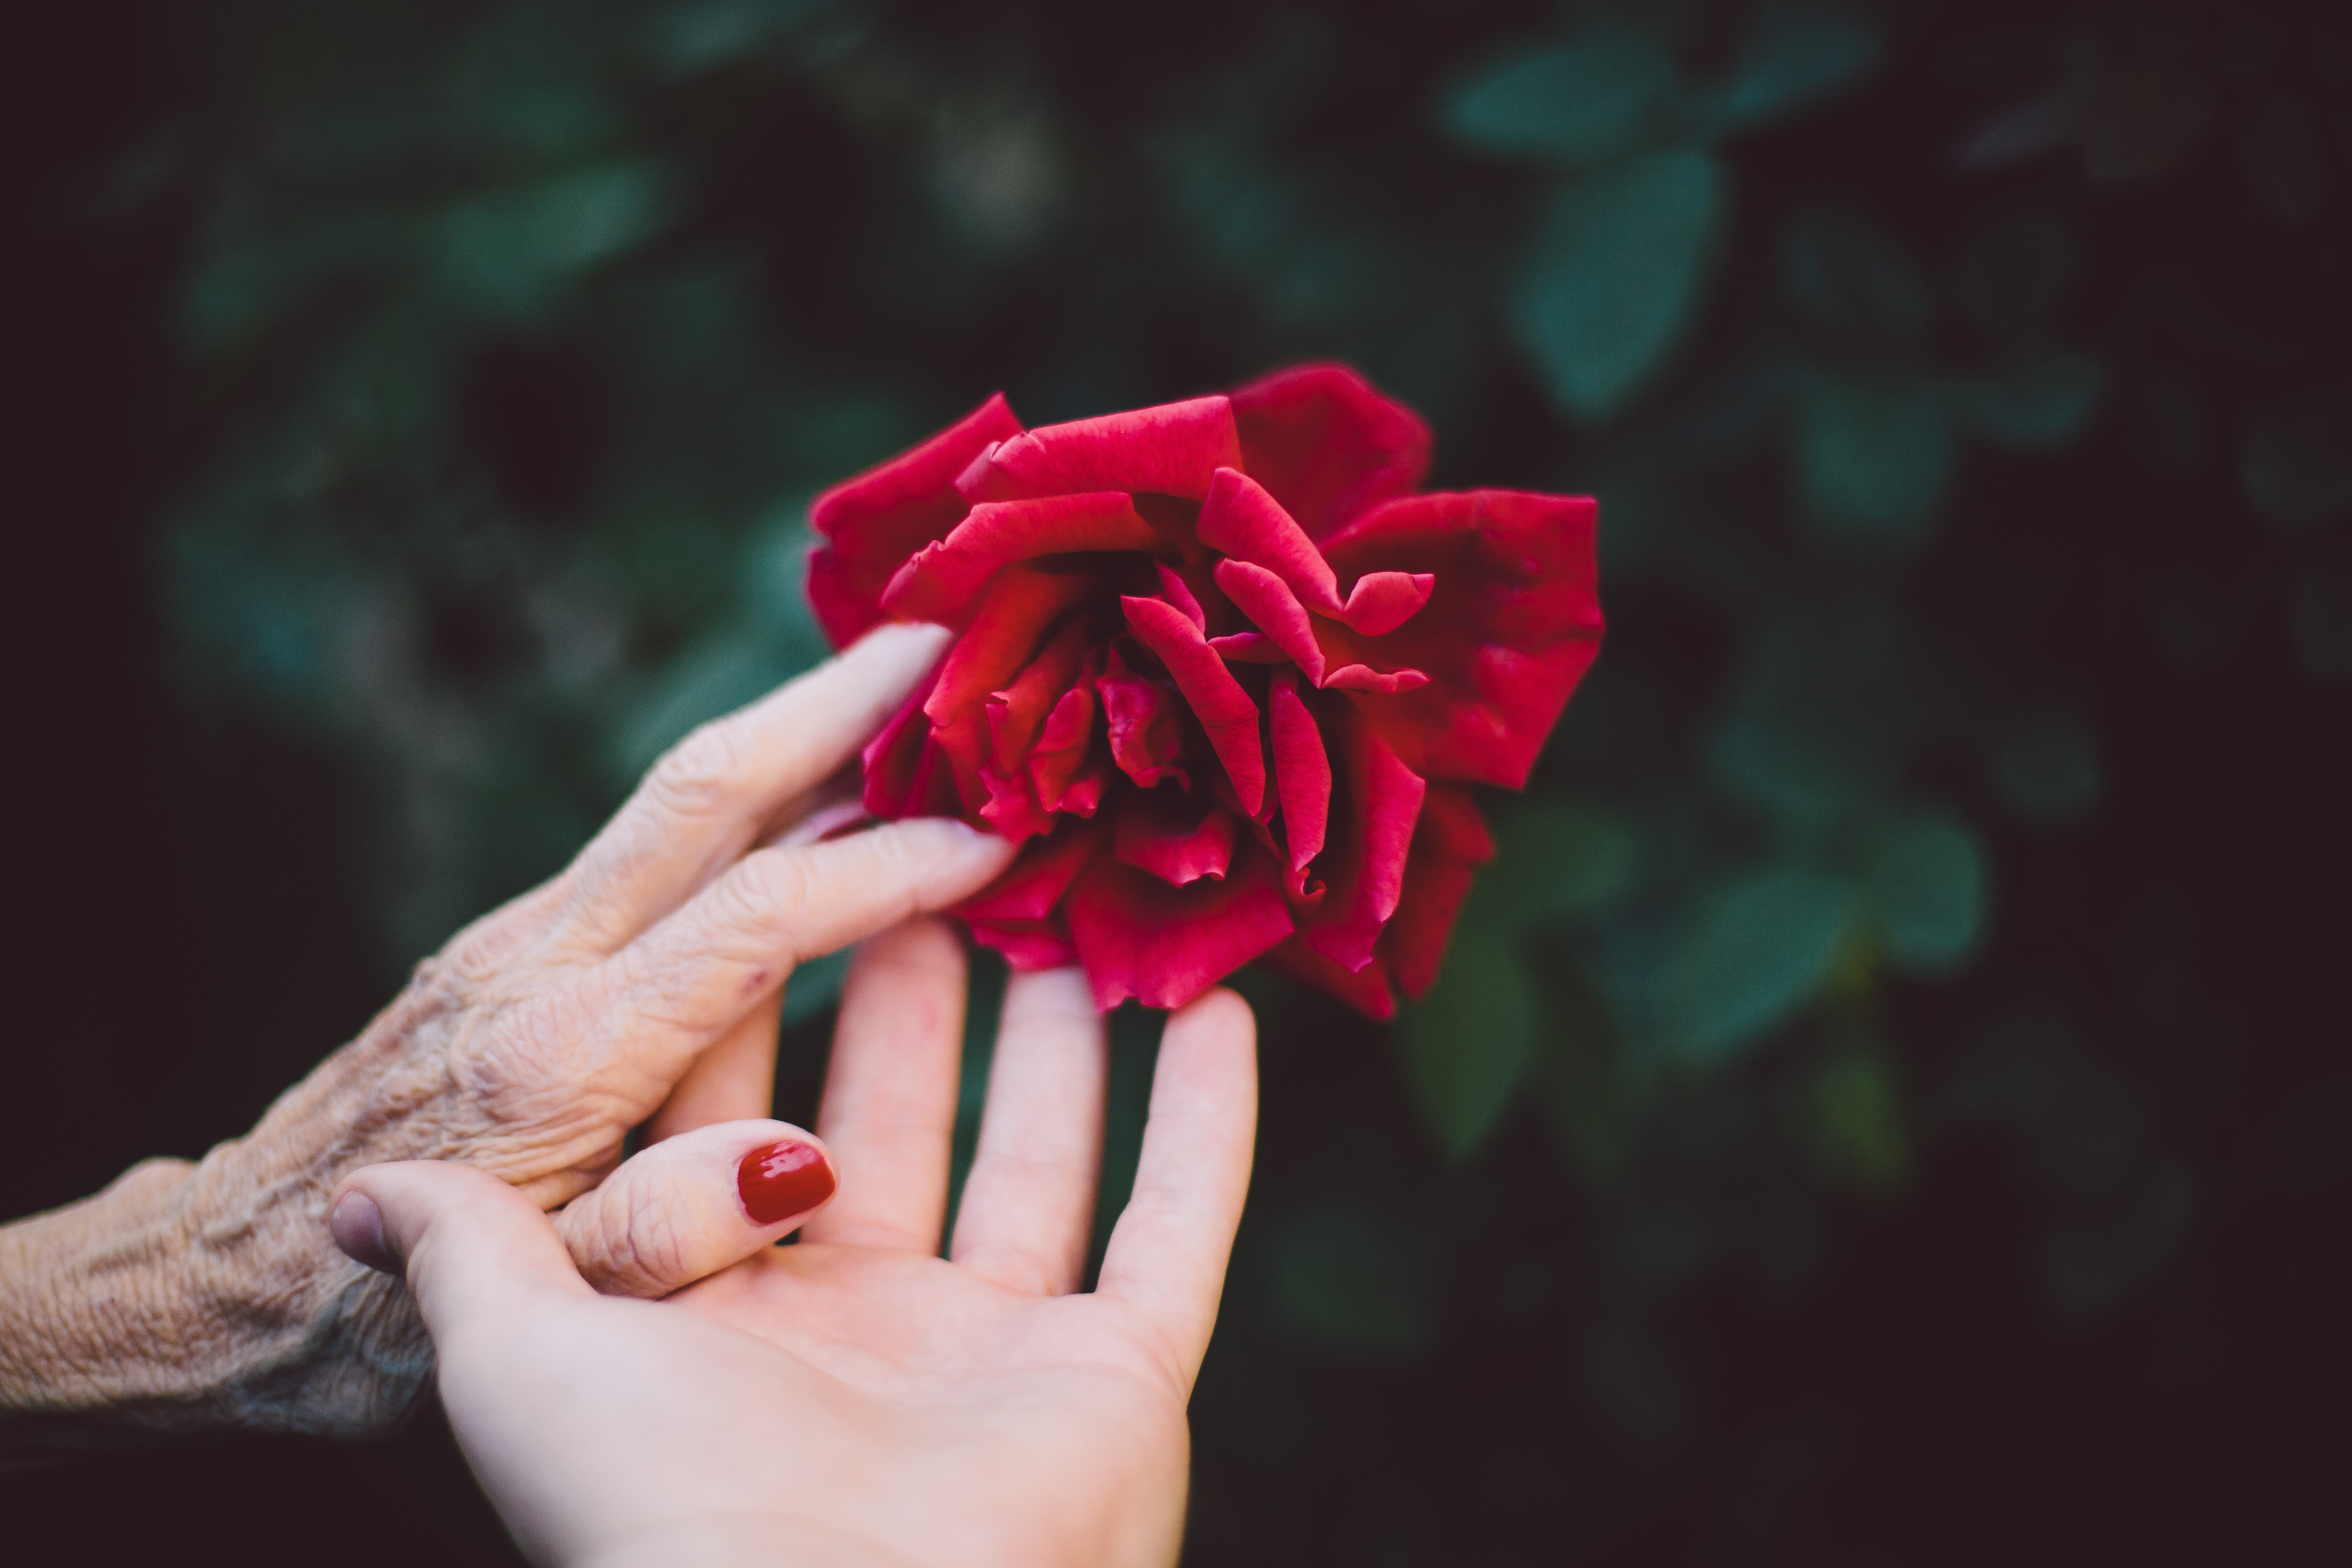 An image of two white-skinned hands, one elderly and one younger, touching a red rose.